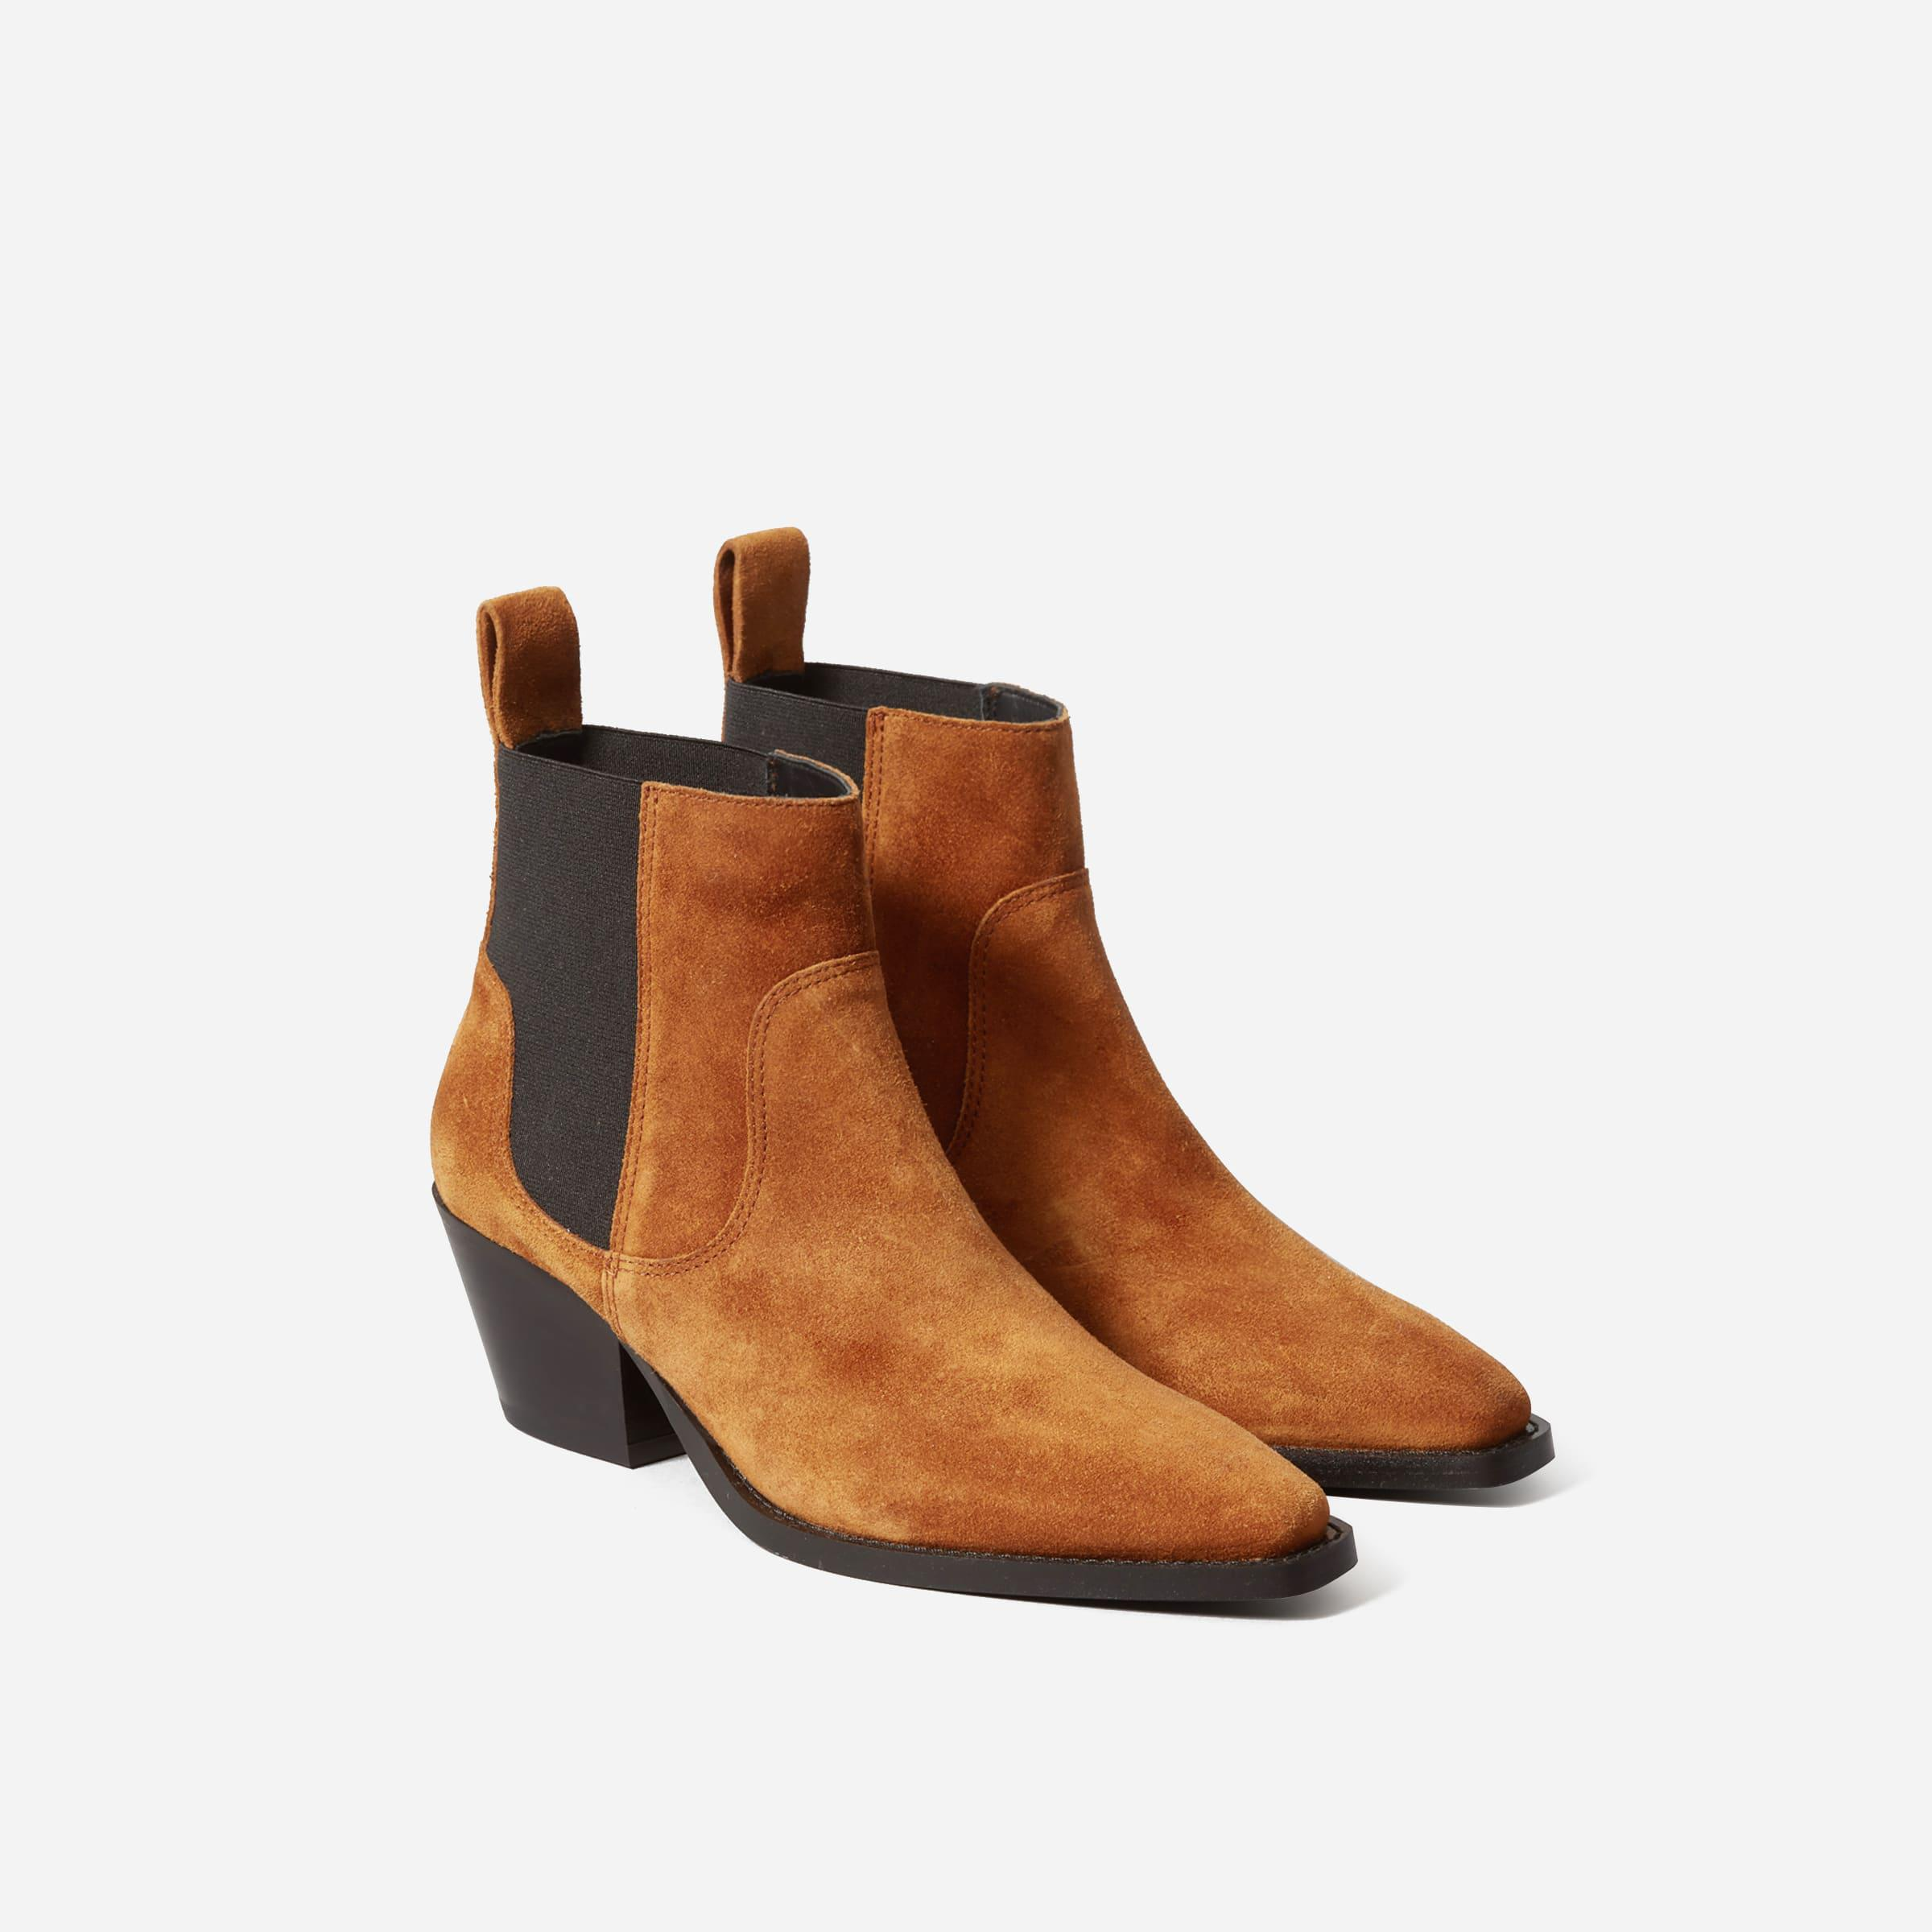 The Western Boot 1